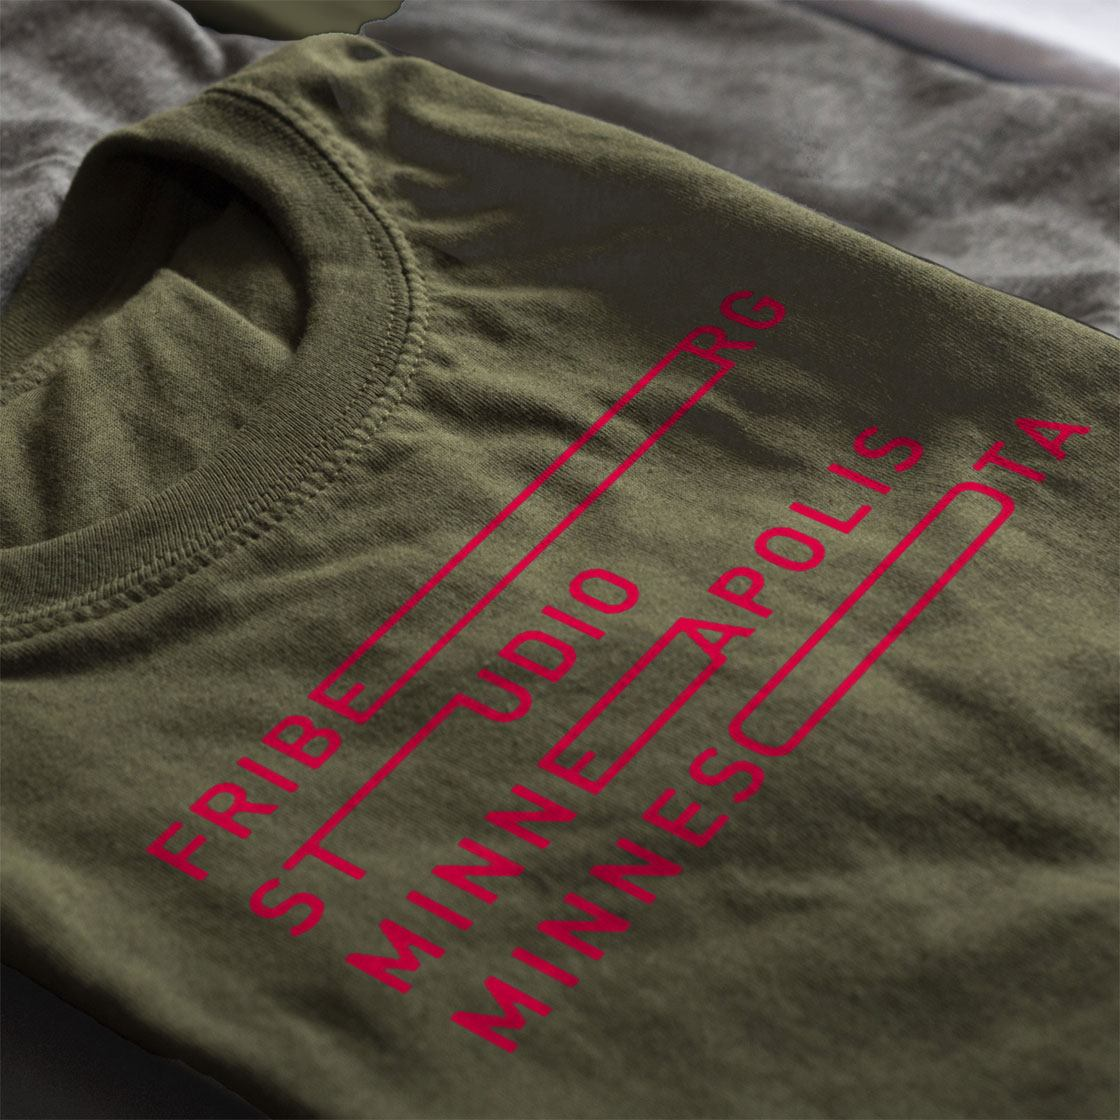 Closeup of screen printed t shirts with ken friburg logo